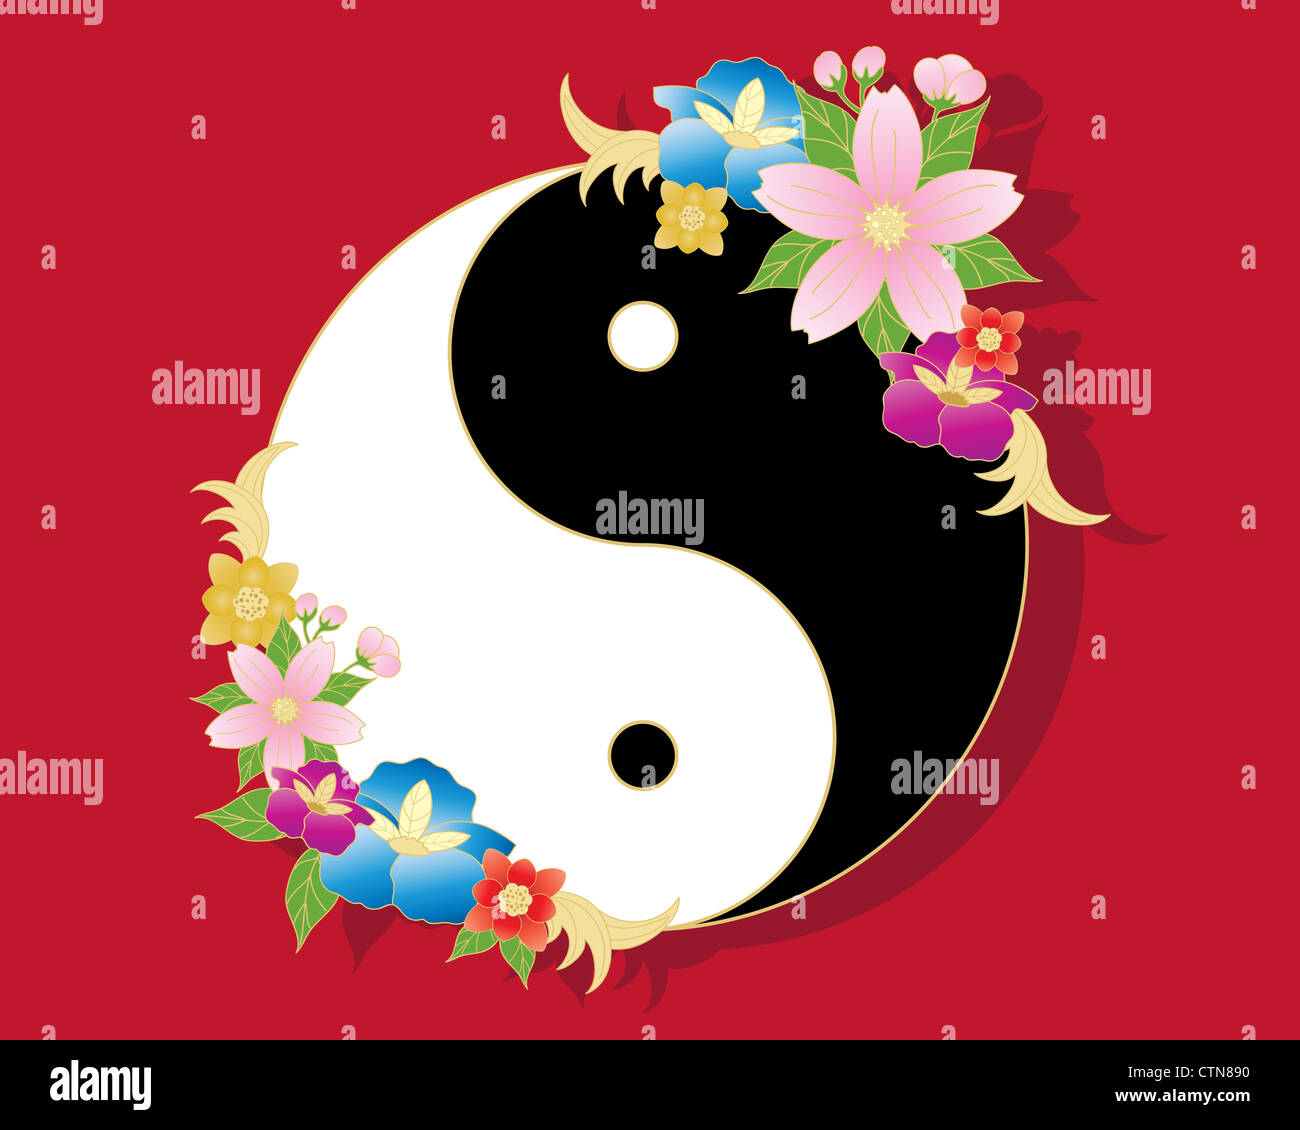 An Illustration Of A Chinese Yin Yang Symbol In Black And White With